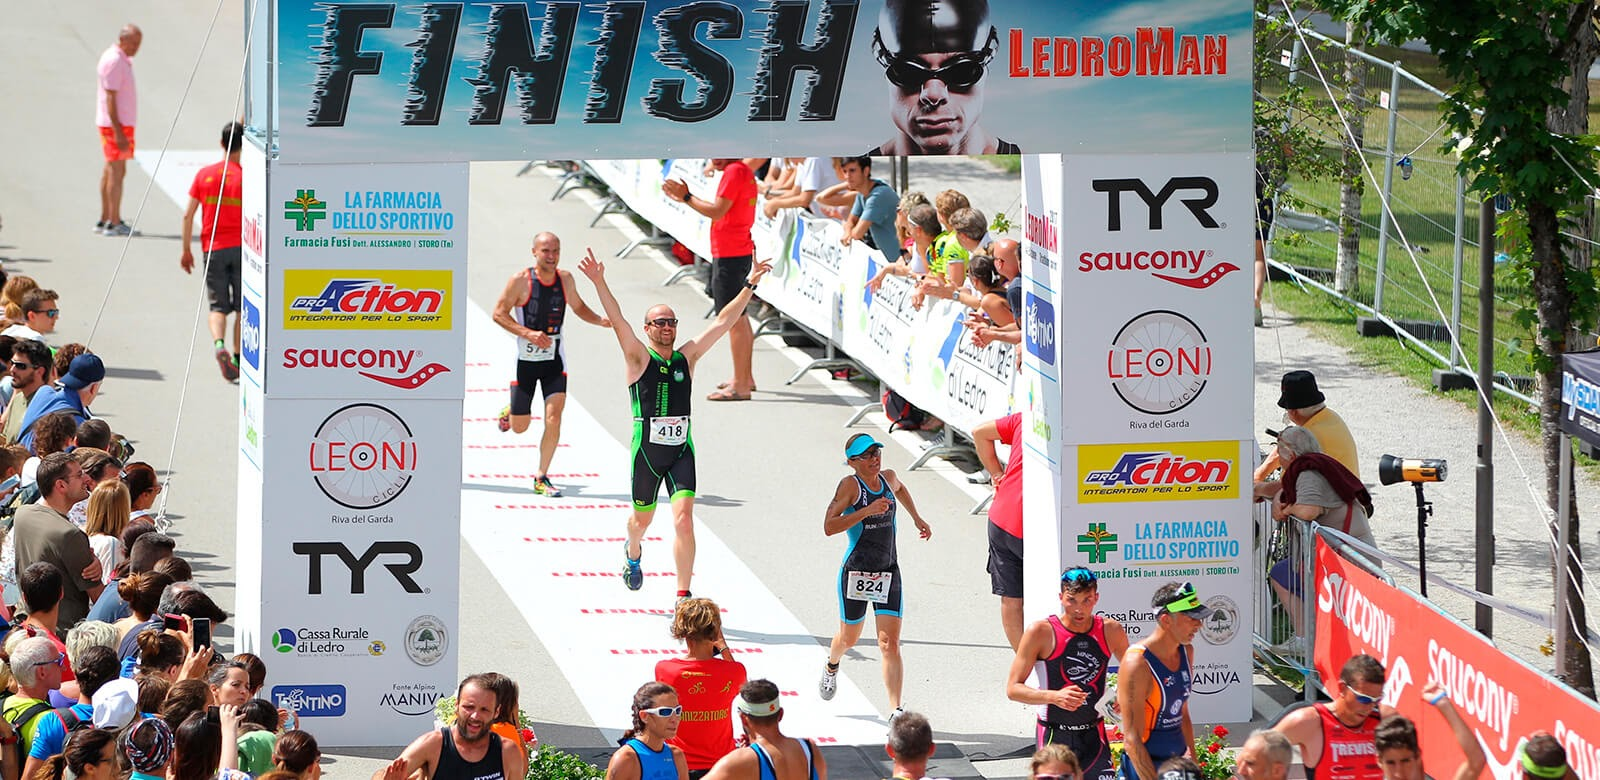 ledroman-2017-triathlon-finish.jpg